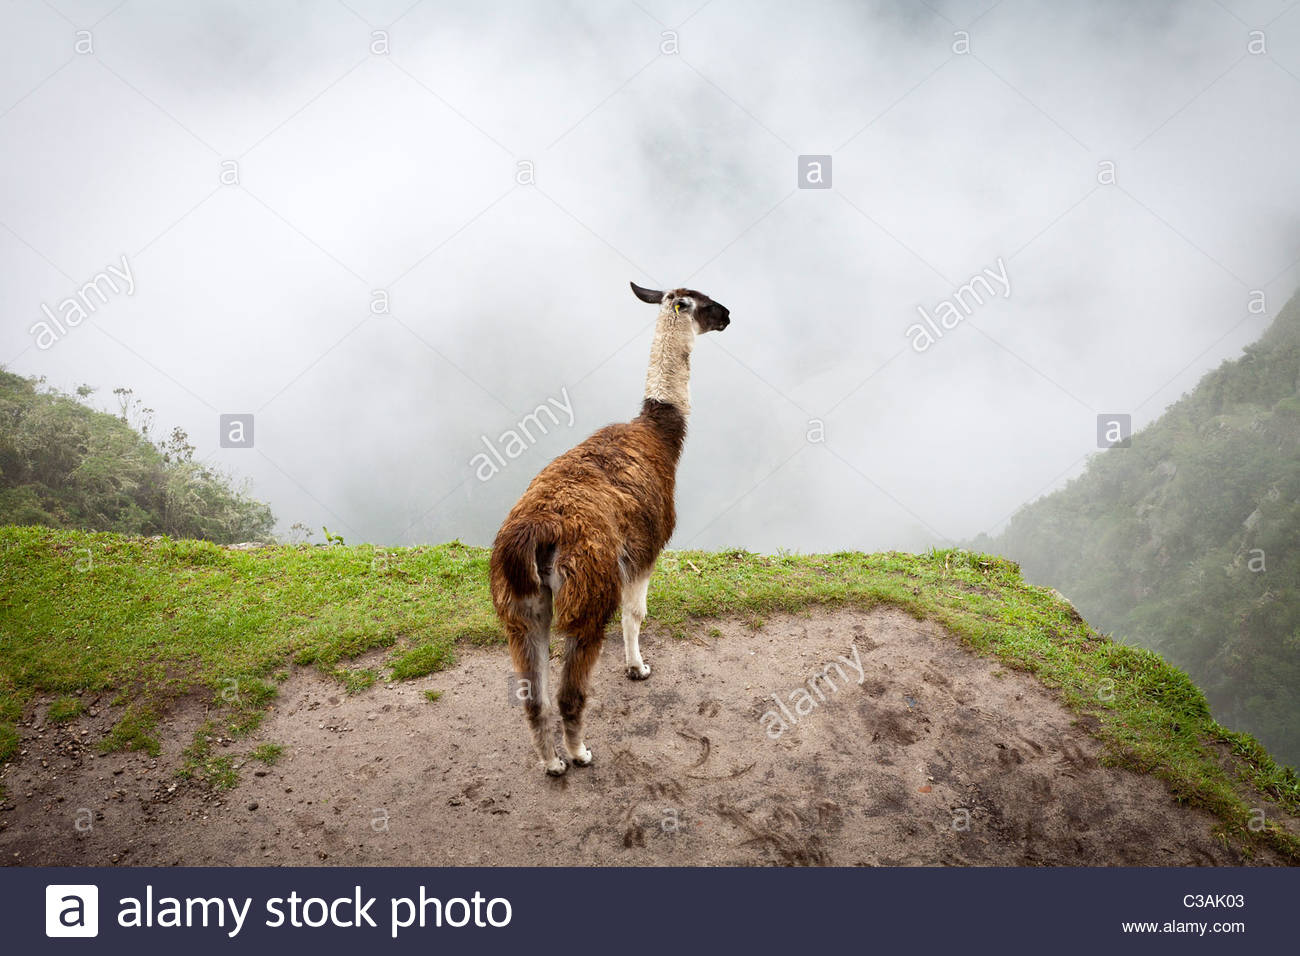 A Llama (L. glama) overlooking the foggy valley at Machu Picchu, Peru. - Stock Image